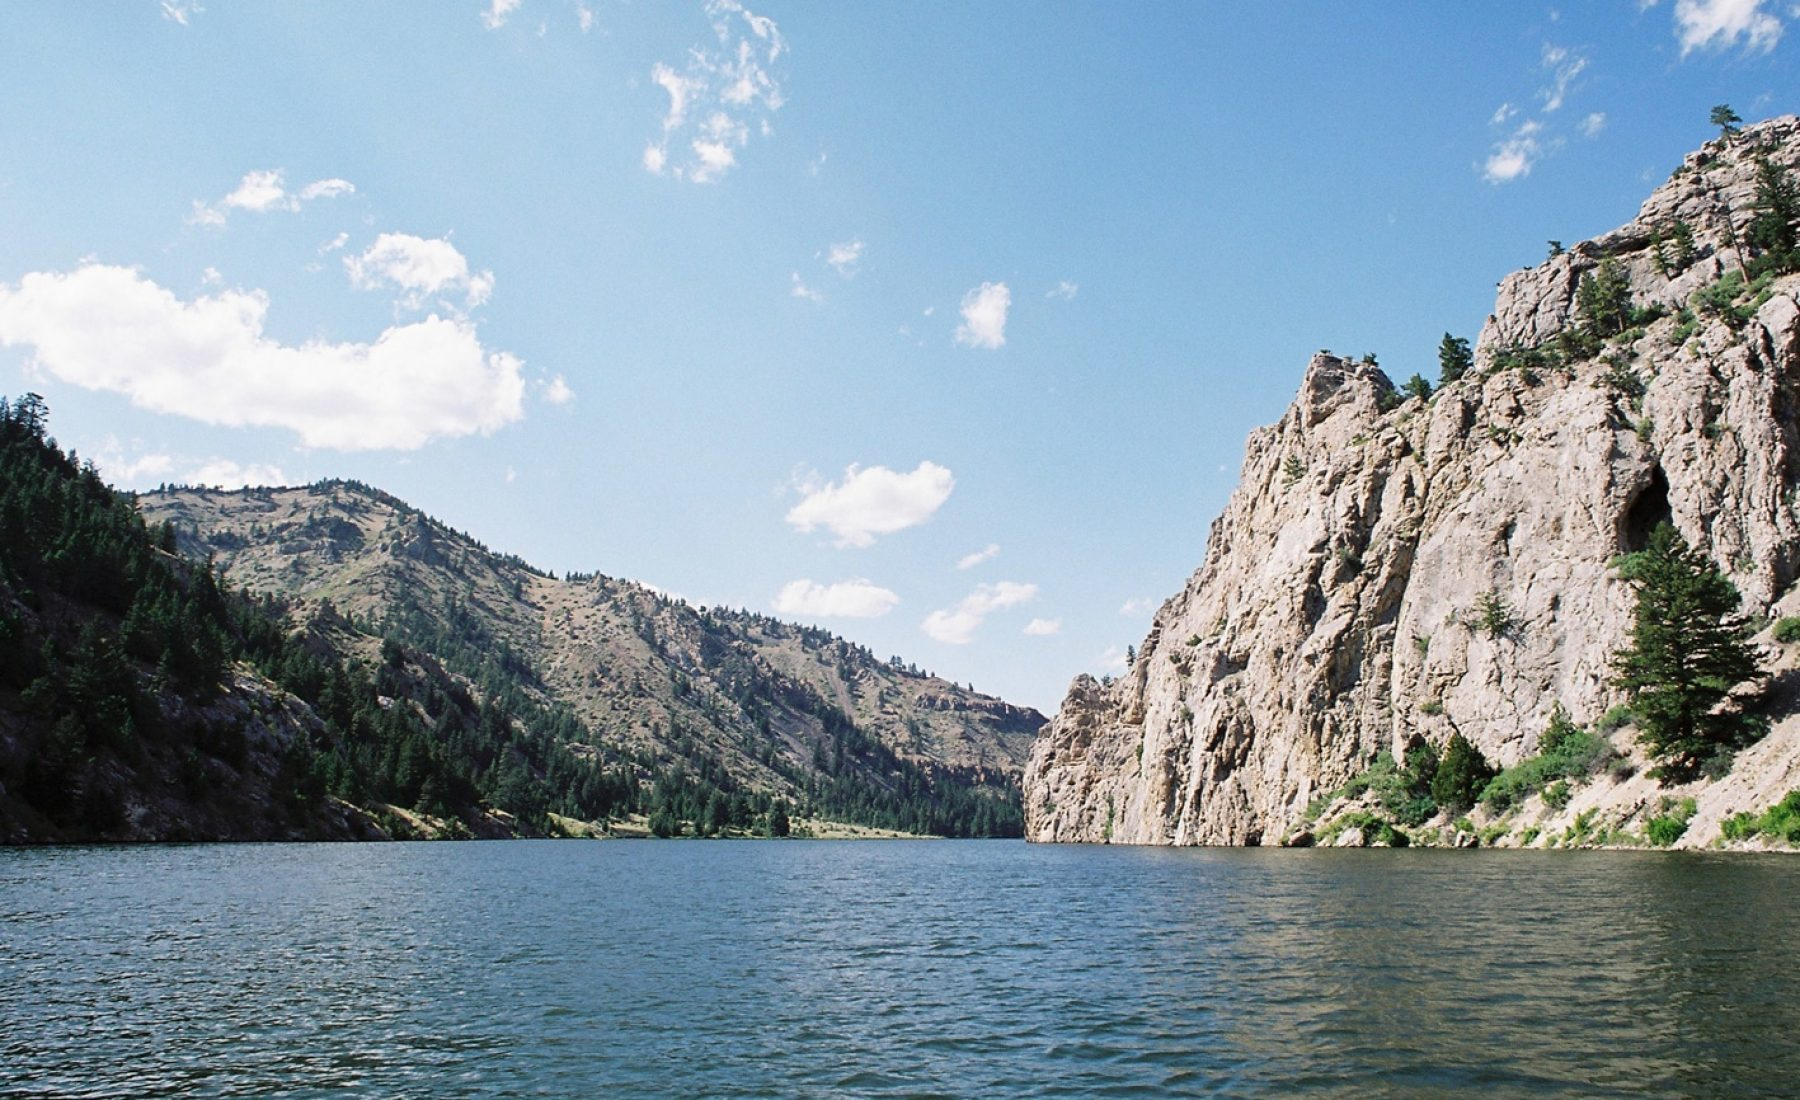 Montana road trip: Lewis and Clark Country